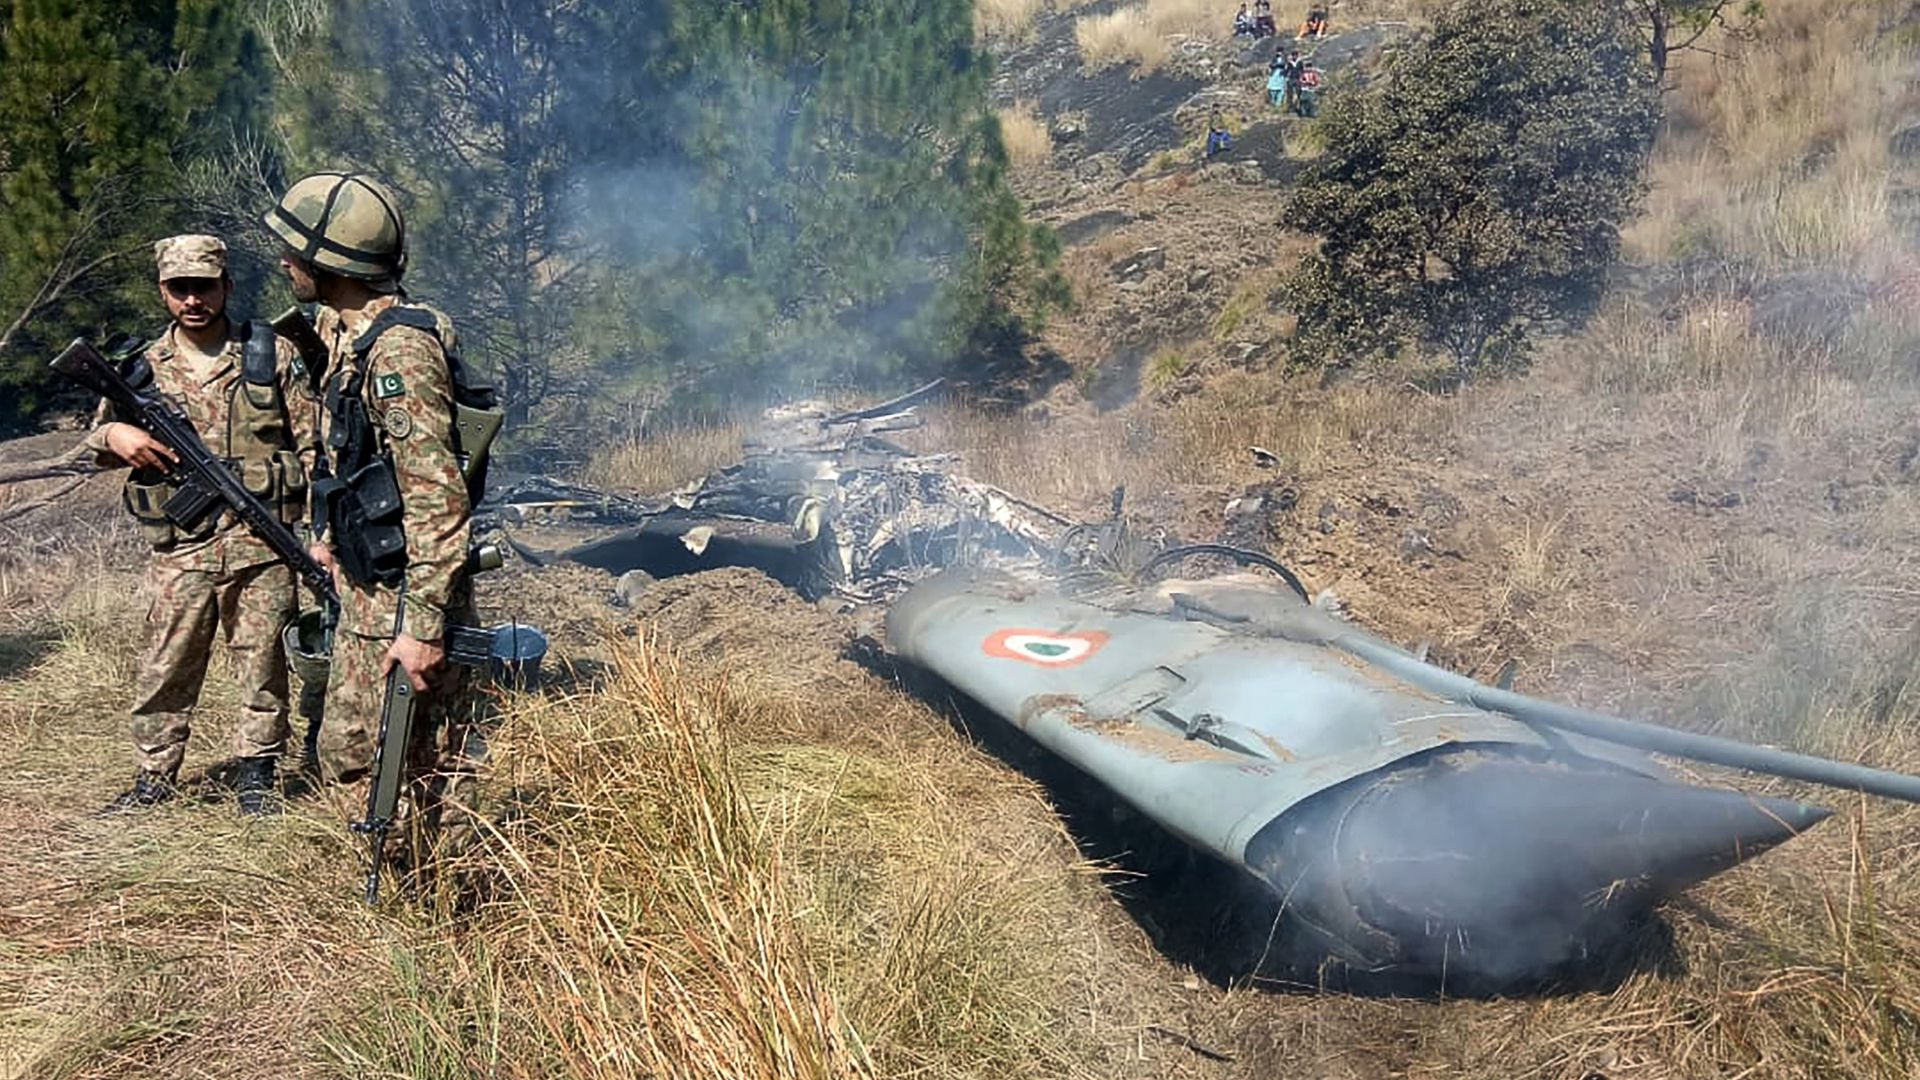 Pakistani soldiers stand next to what Pakistan says is the wreckage of an Indian fighter jet shot down in Pakistan controled Kashmir at Somani area in Bhimbar district